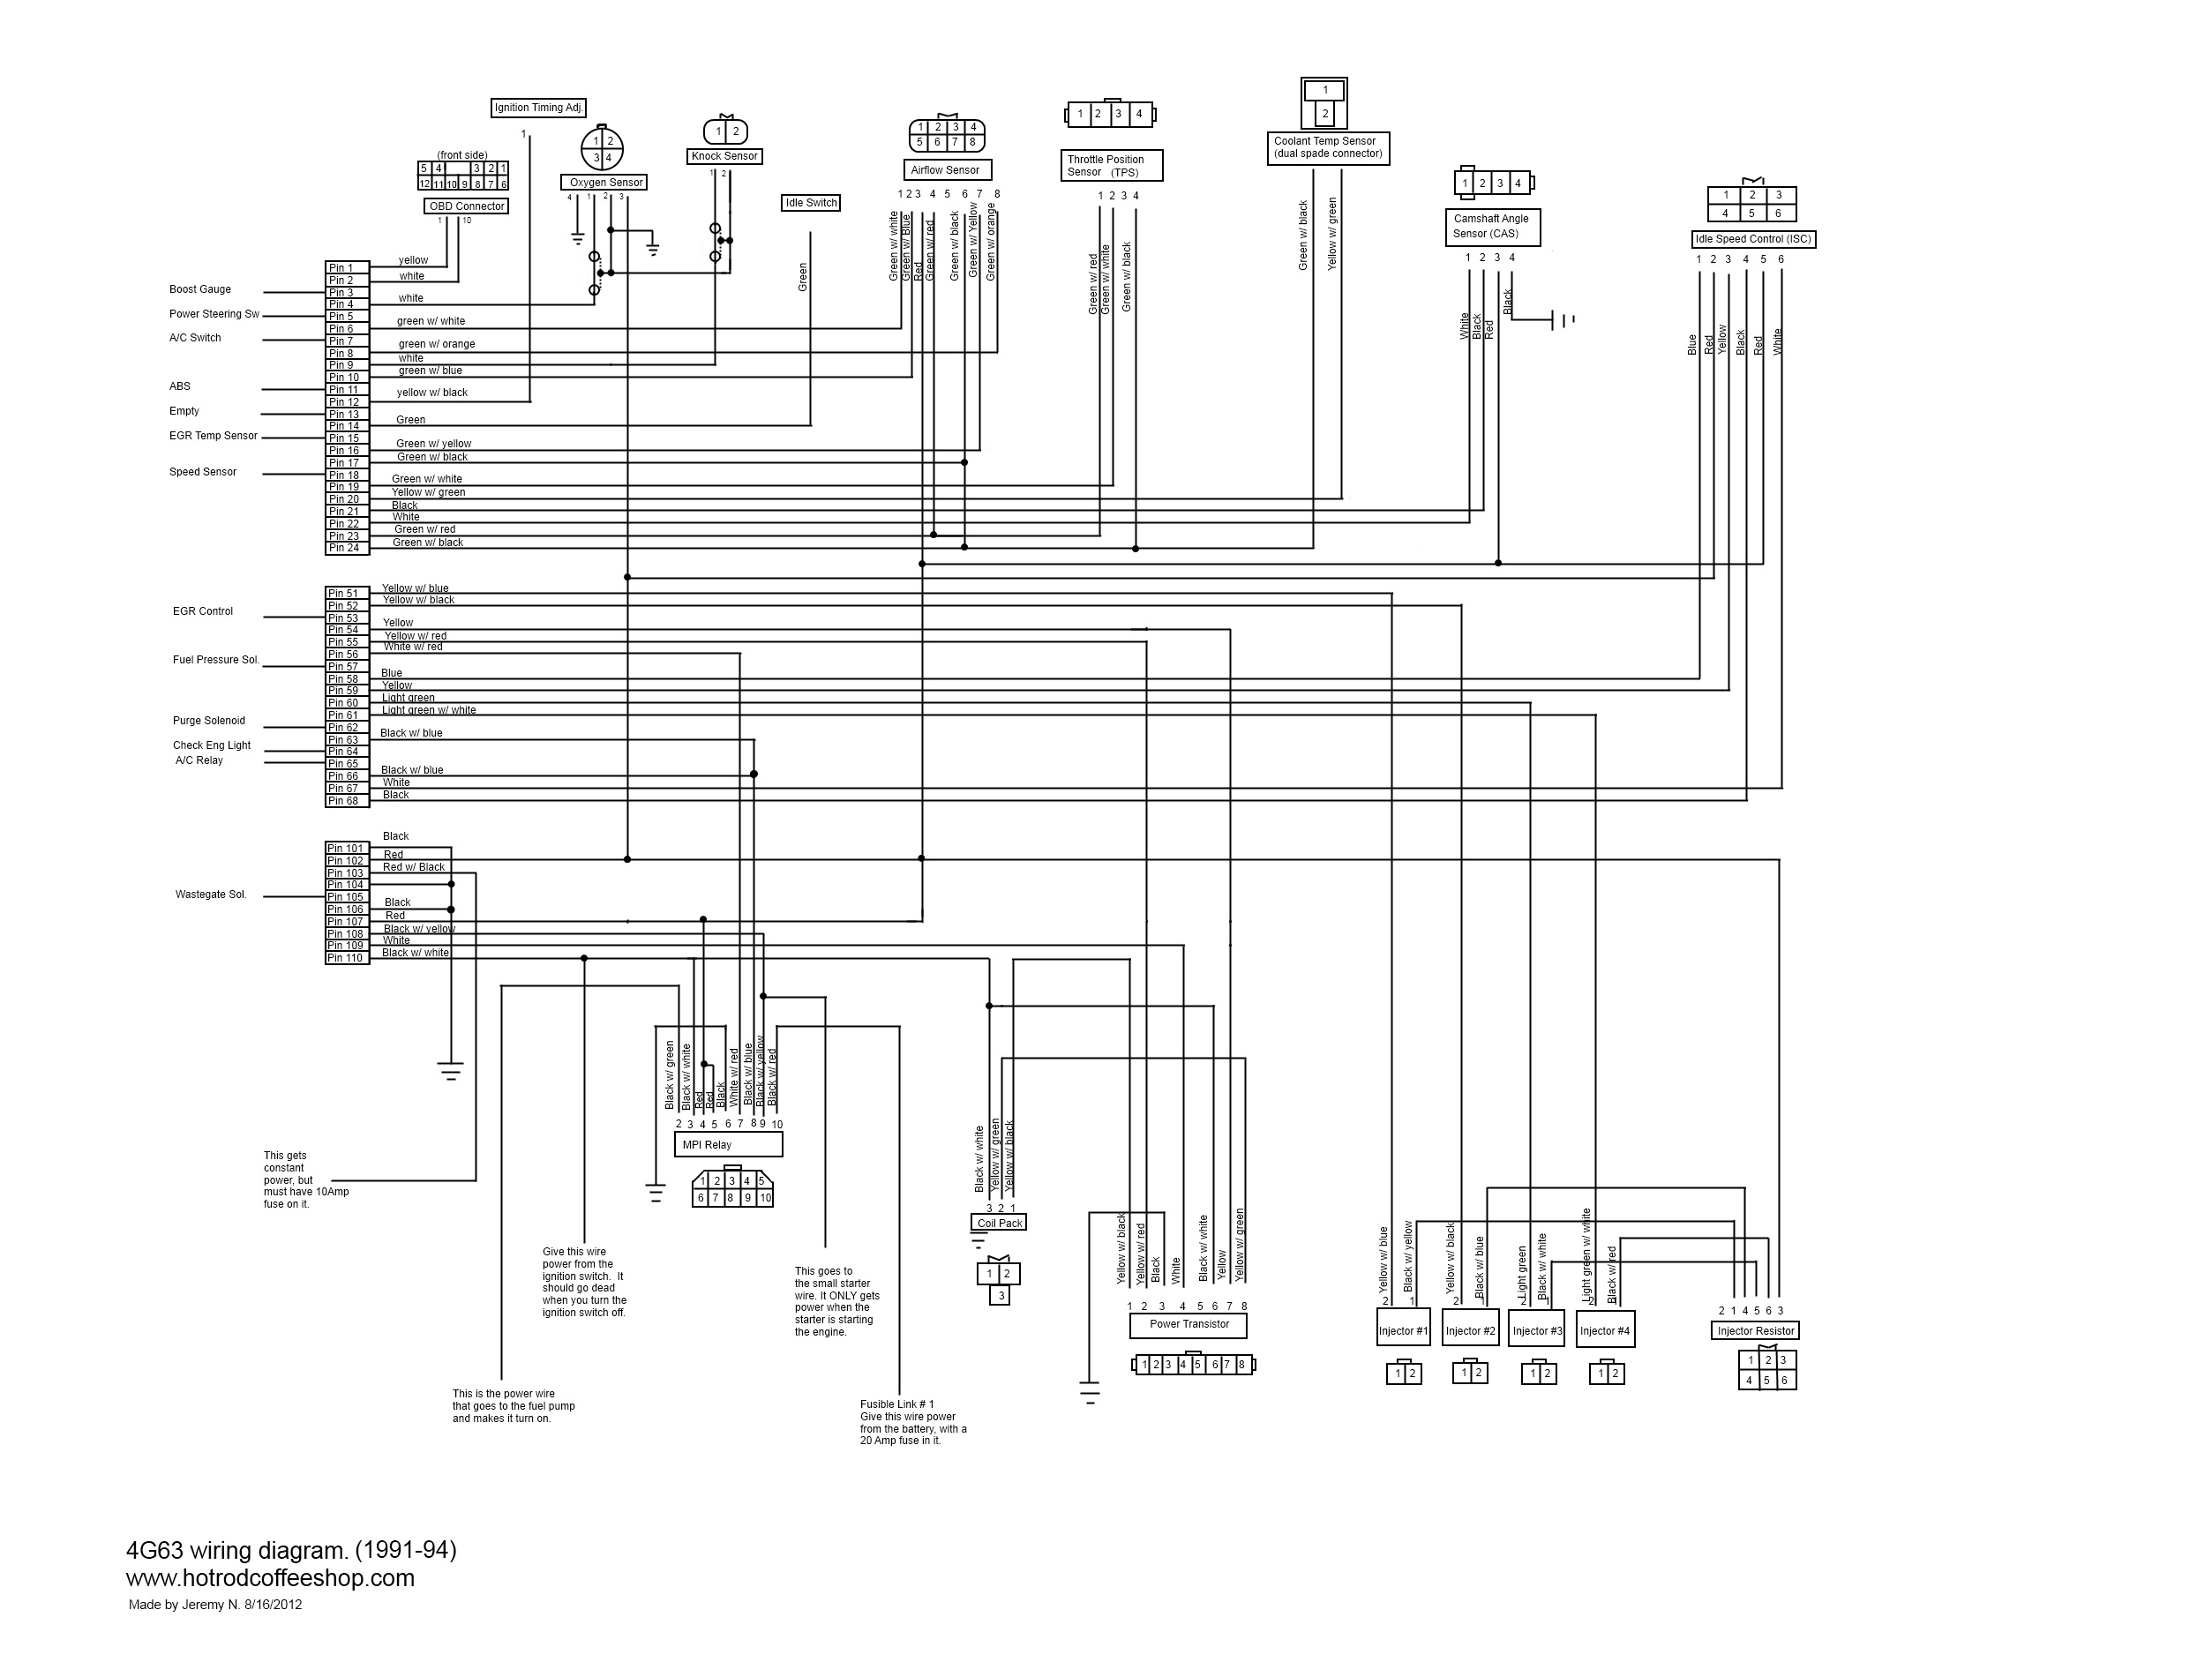 4g63ecudiagram_1 evo 3 wiring diagram led flasher wiring diagram \u2022 wiring diagrams evo 8 fuel pump wiring diagram at soozxer.org